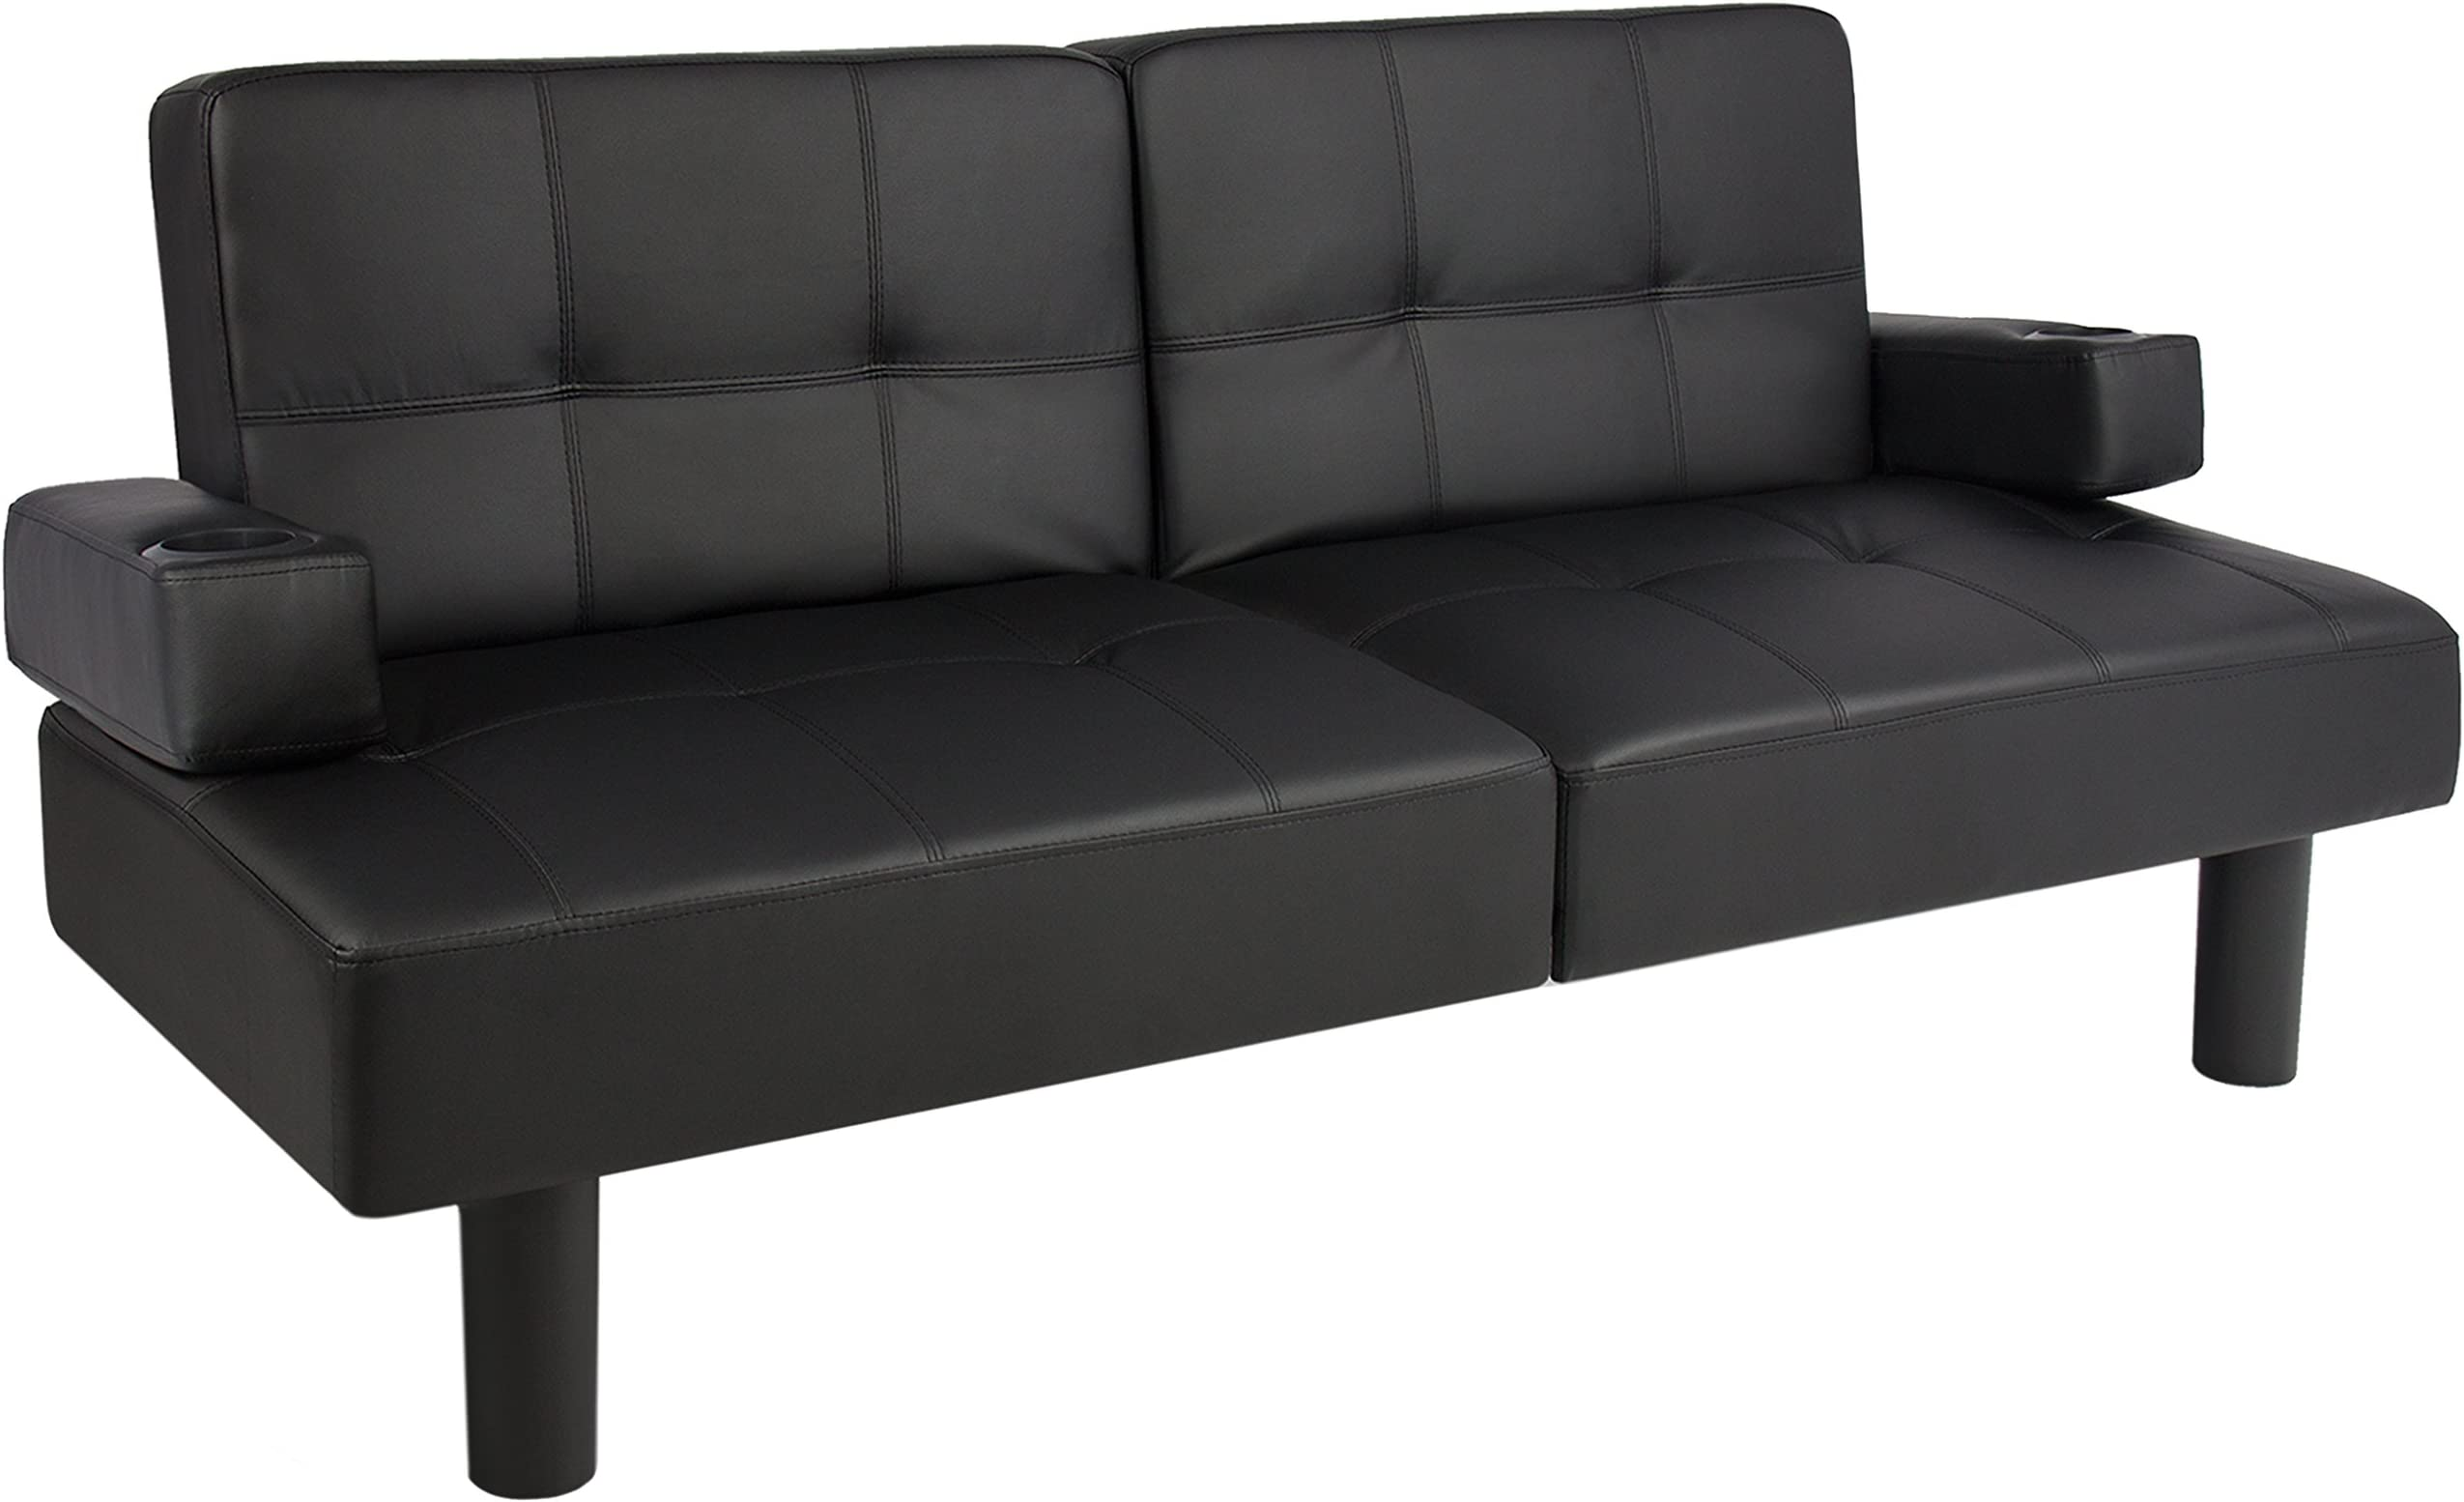 Affordable Futons Convertible Sofa Futon York And